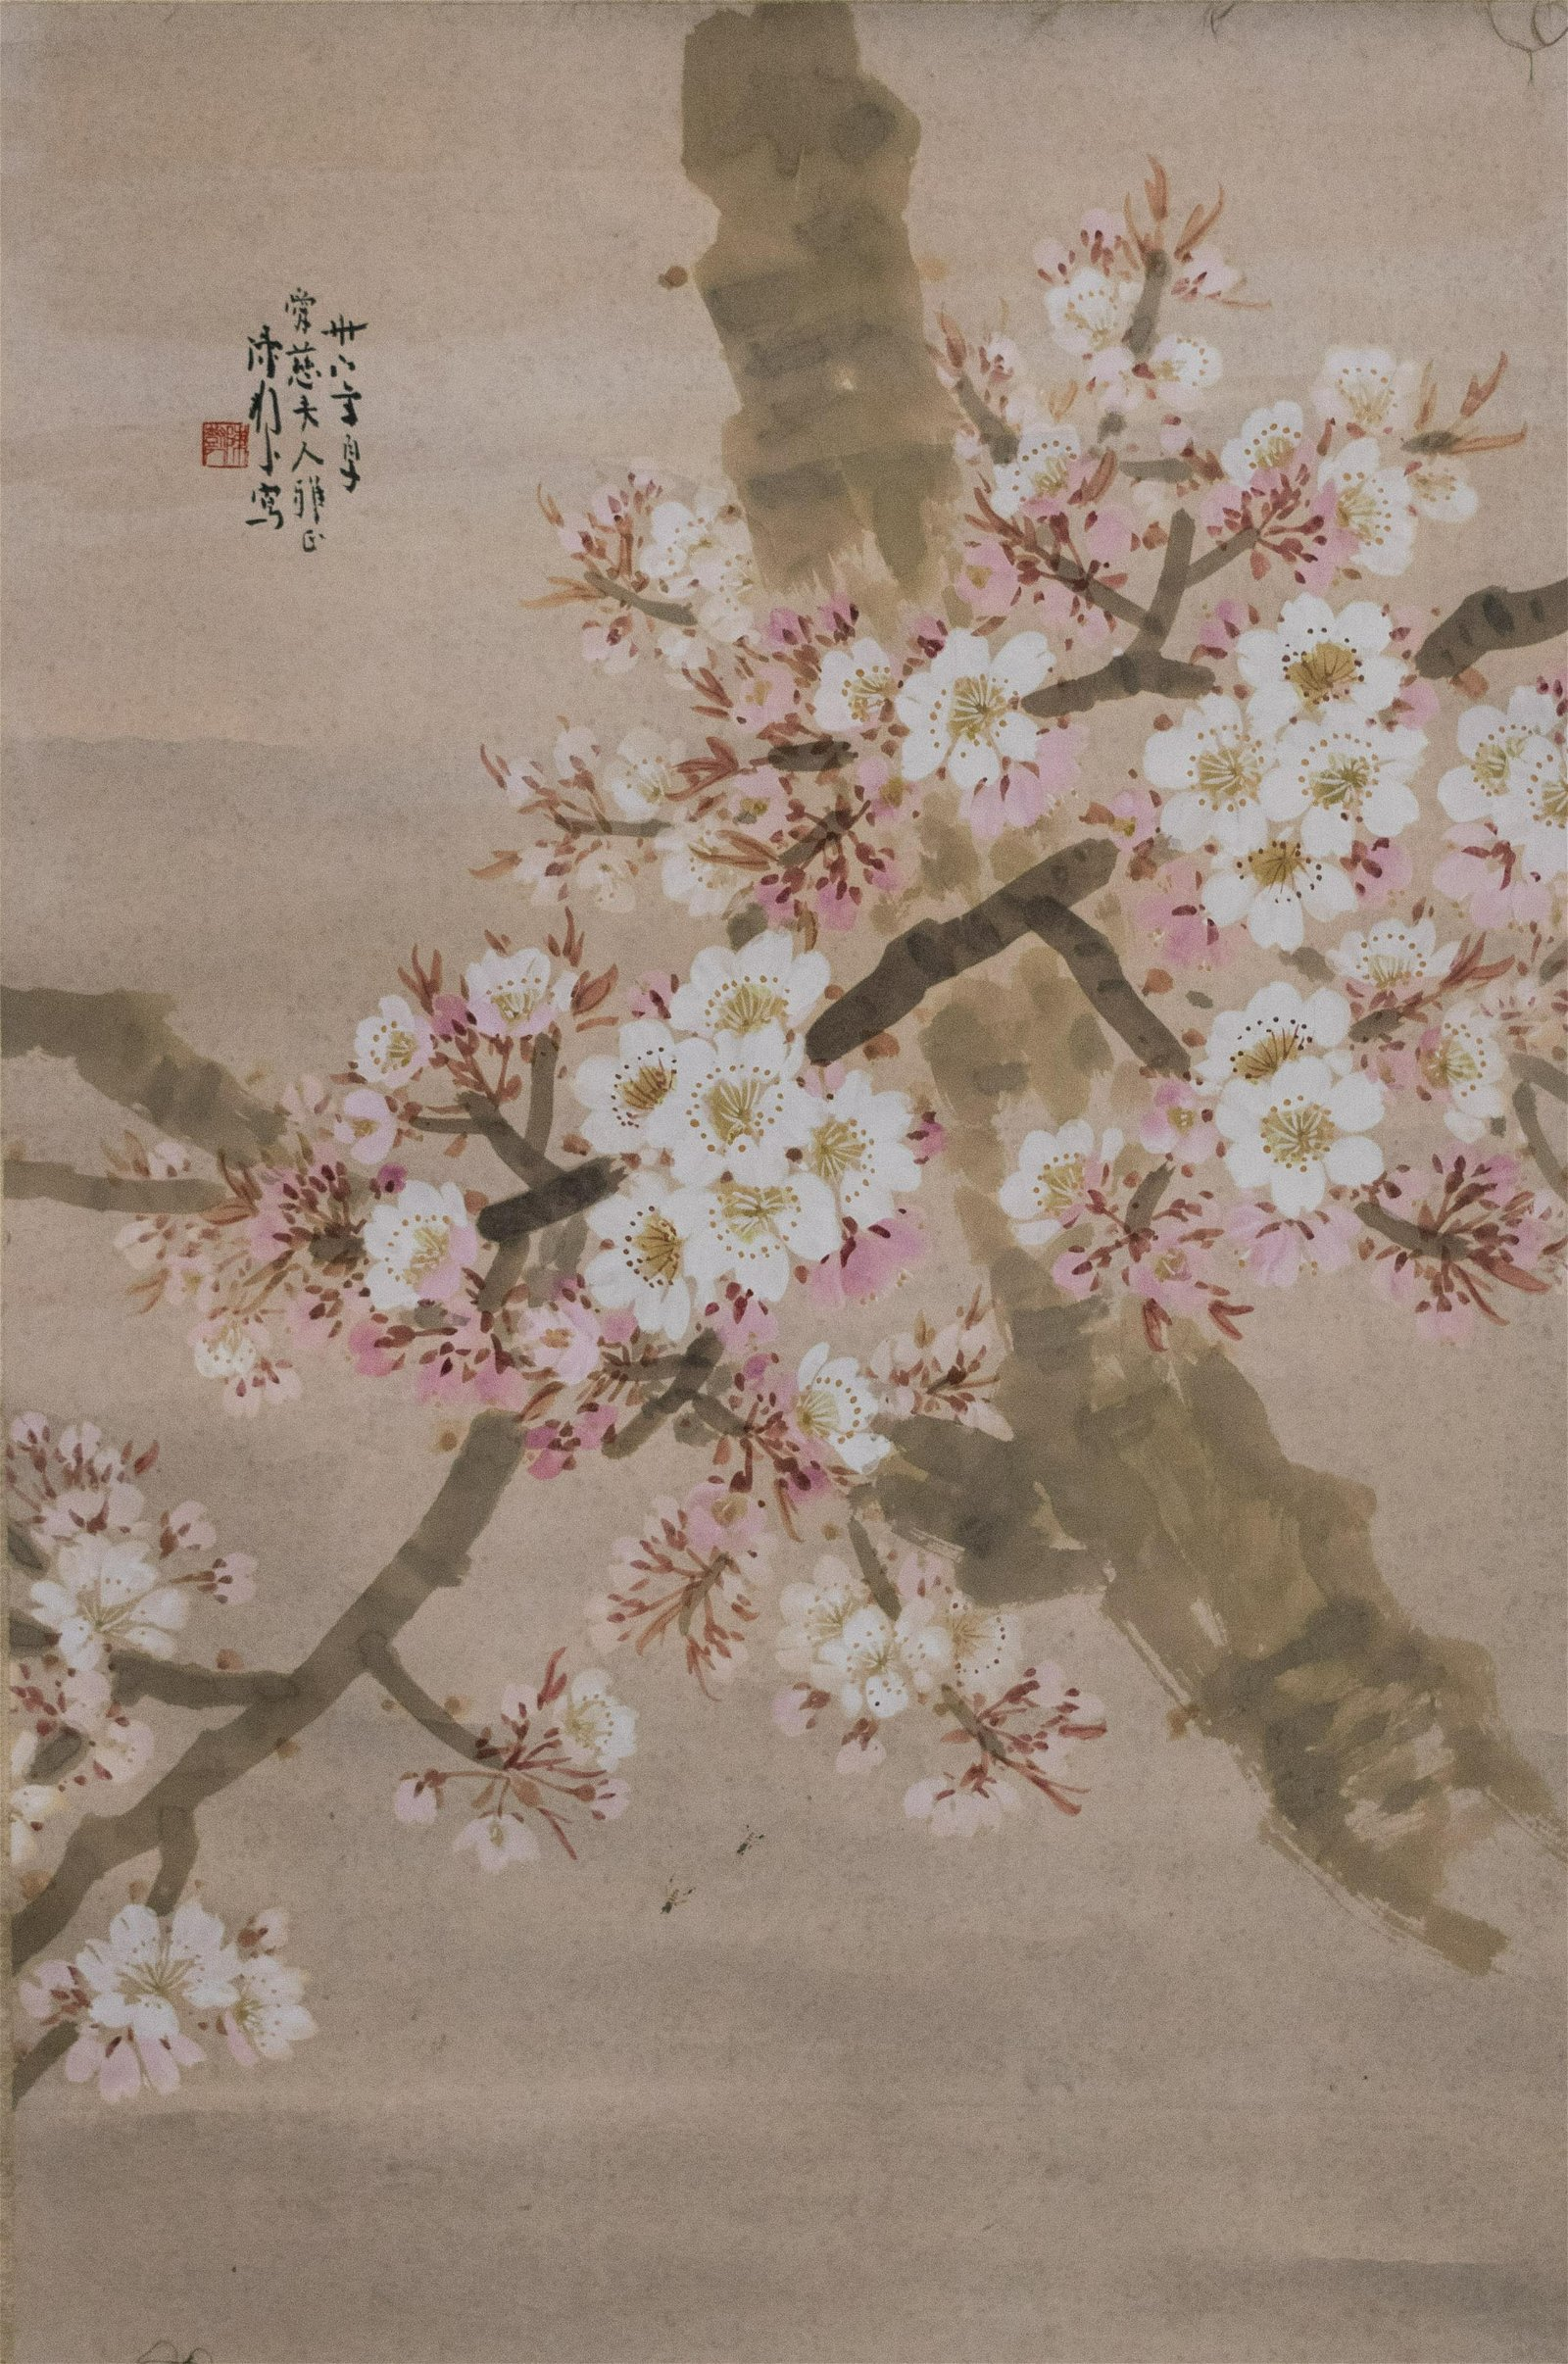 Chinese Painting of Flowers & Bees, Chen Shuren